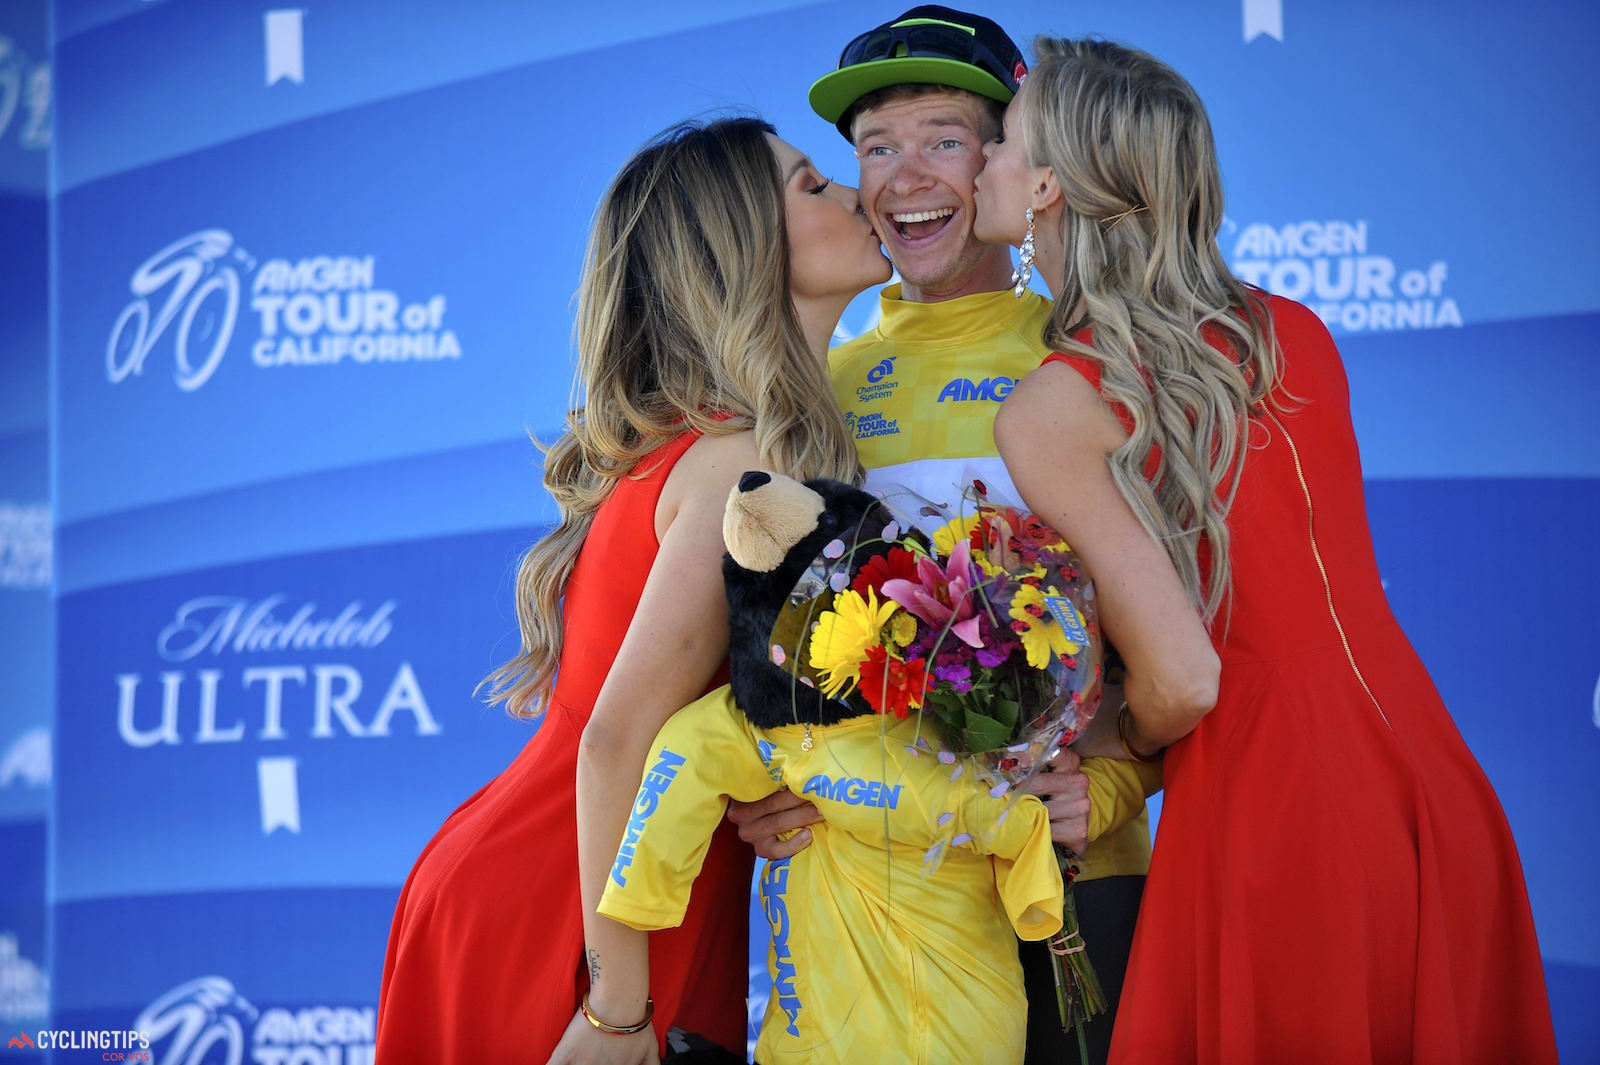 Ben King (Cannondale Pro Cycling), Stage 2 winner and race leader, 2016 Amgen Tour of California. Photo Brian Hodes/Cor Vos.